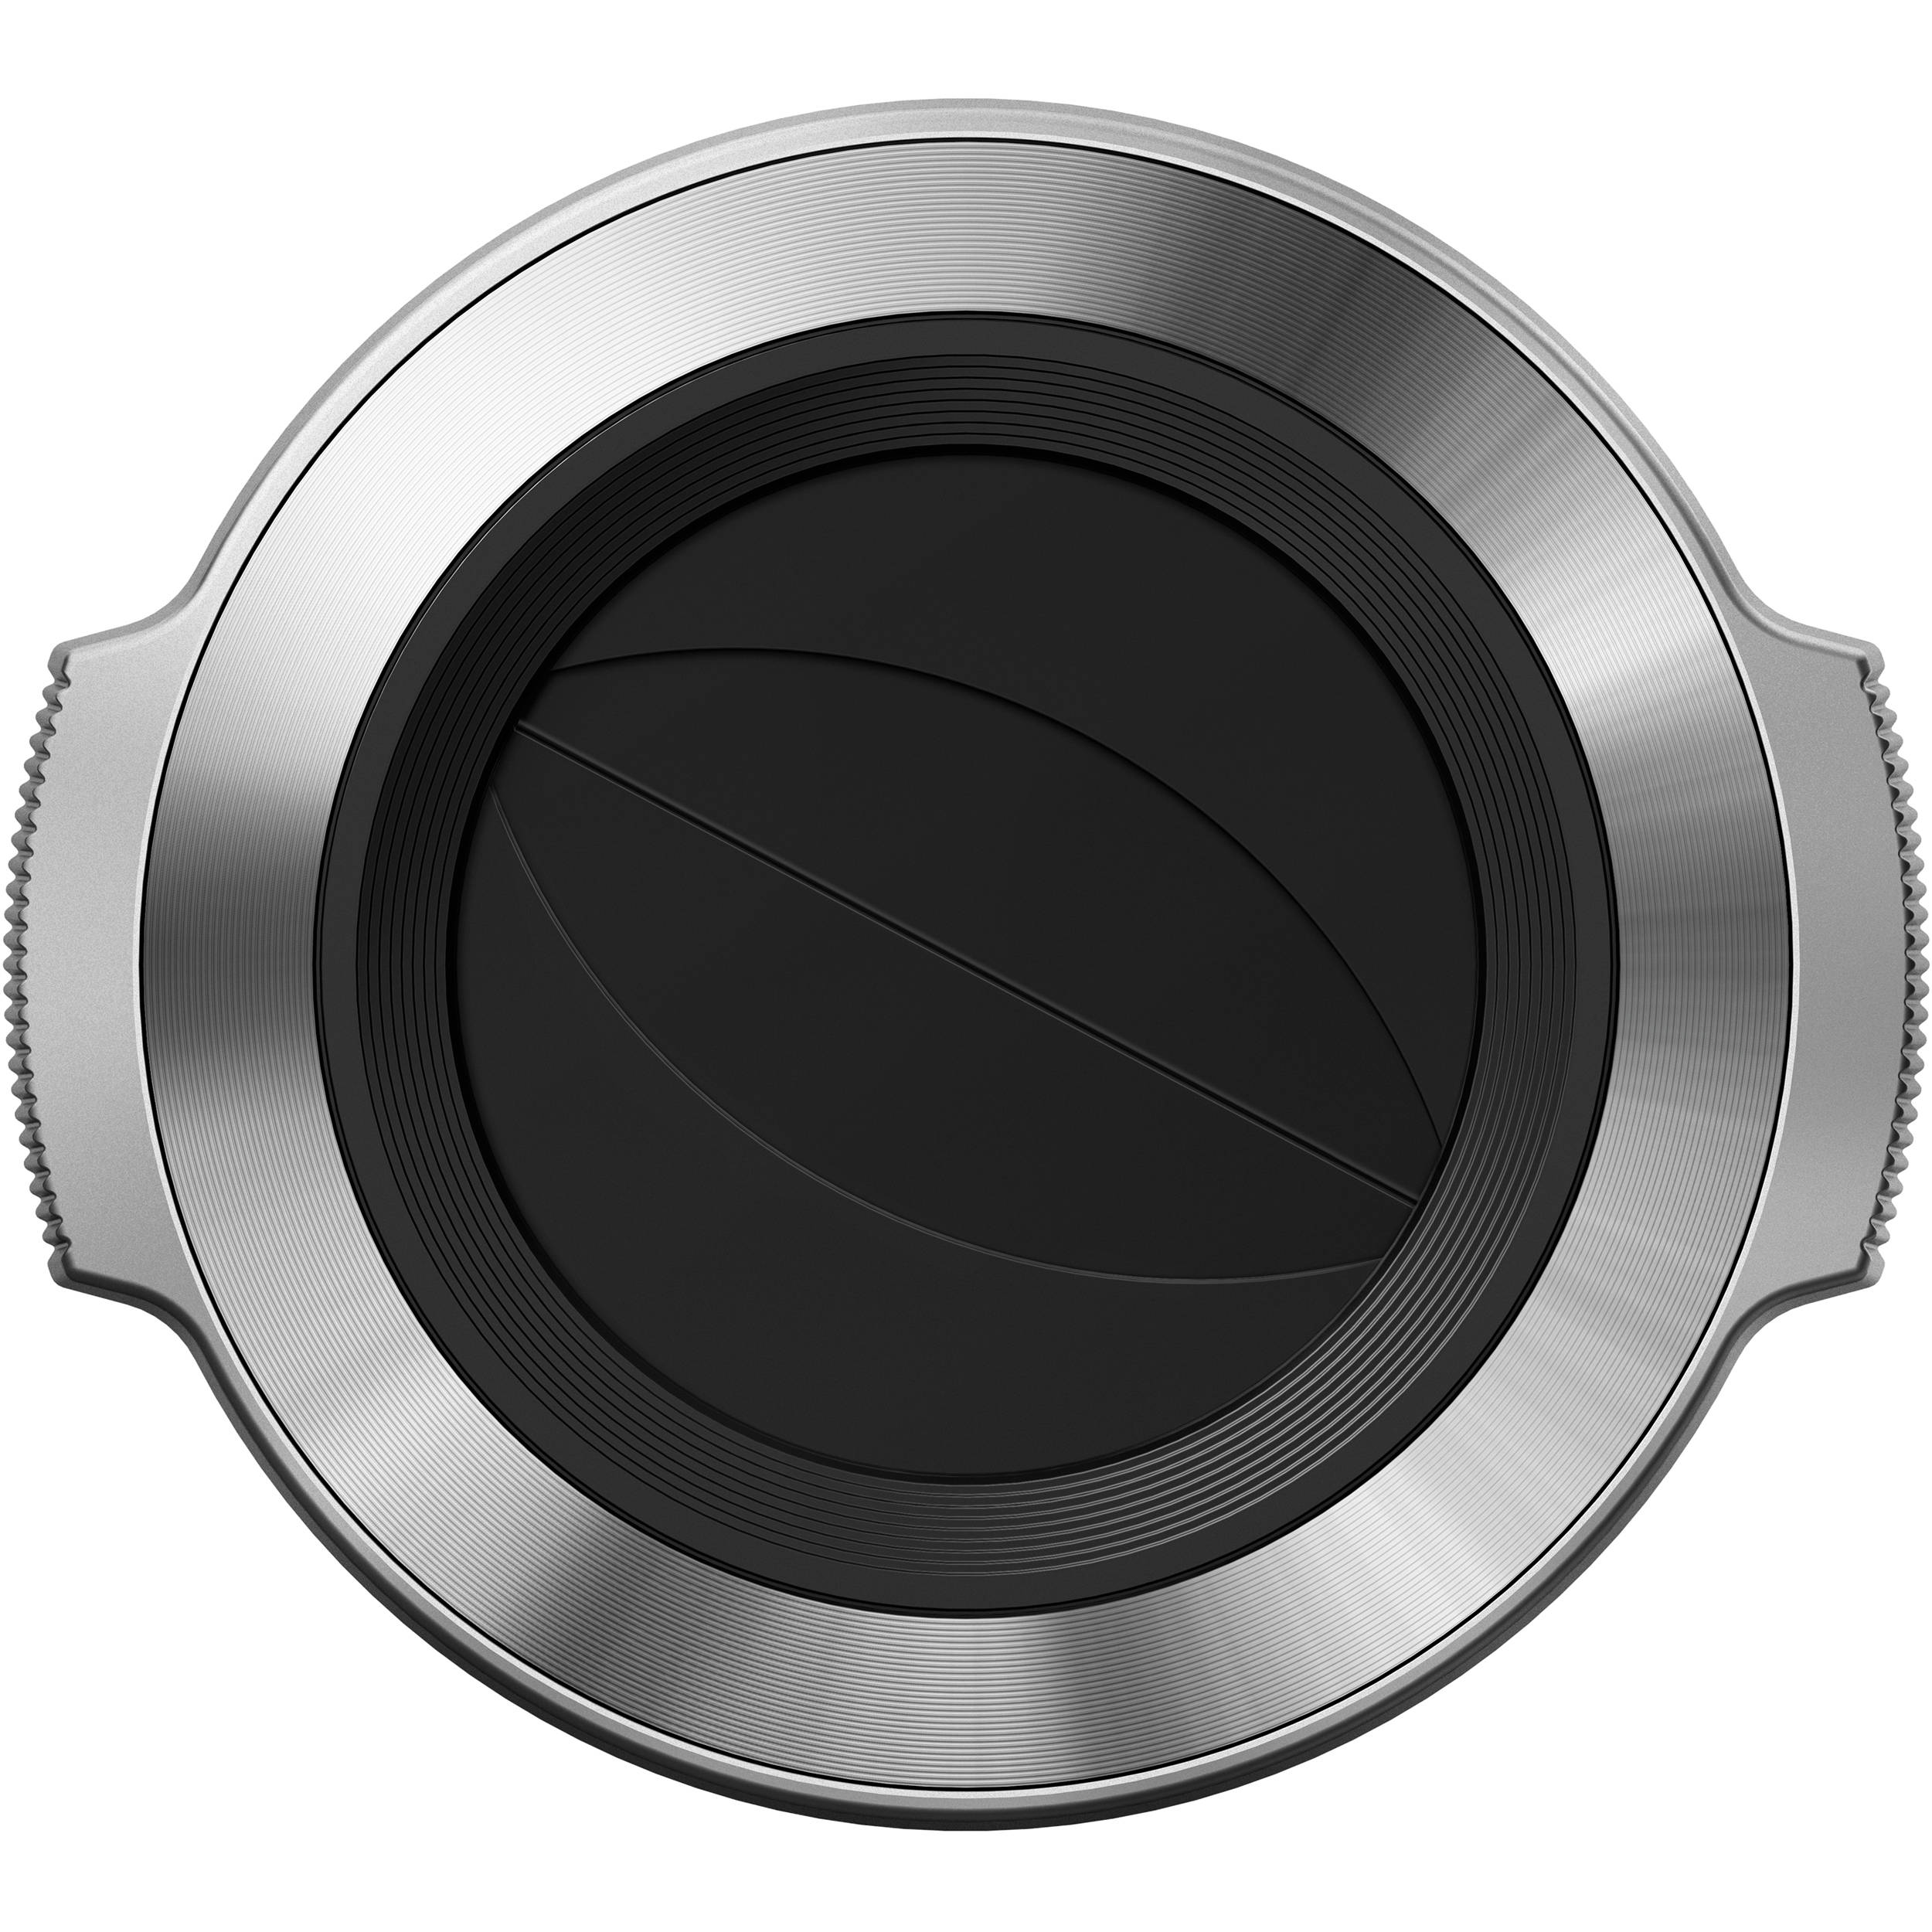 Https C Product 1025772 Reg Download Image Diagram Of Tamron Lens Pc Android Iphone And Ipad Olympus V325373sw000 Lc 37c Cap Silver 1026128